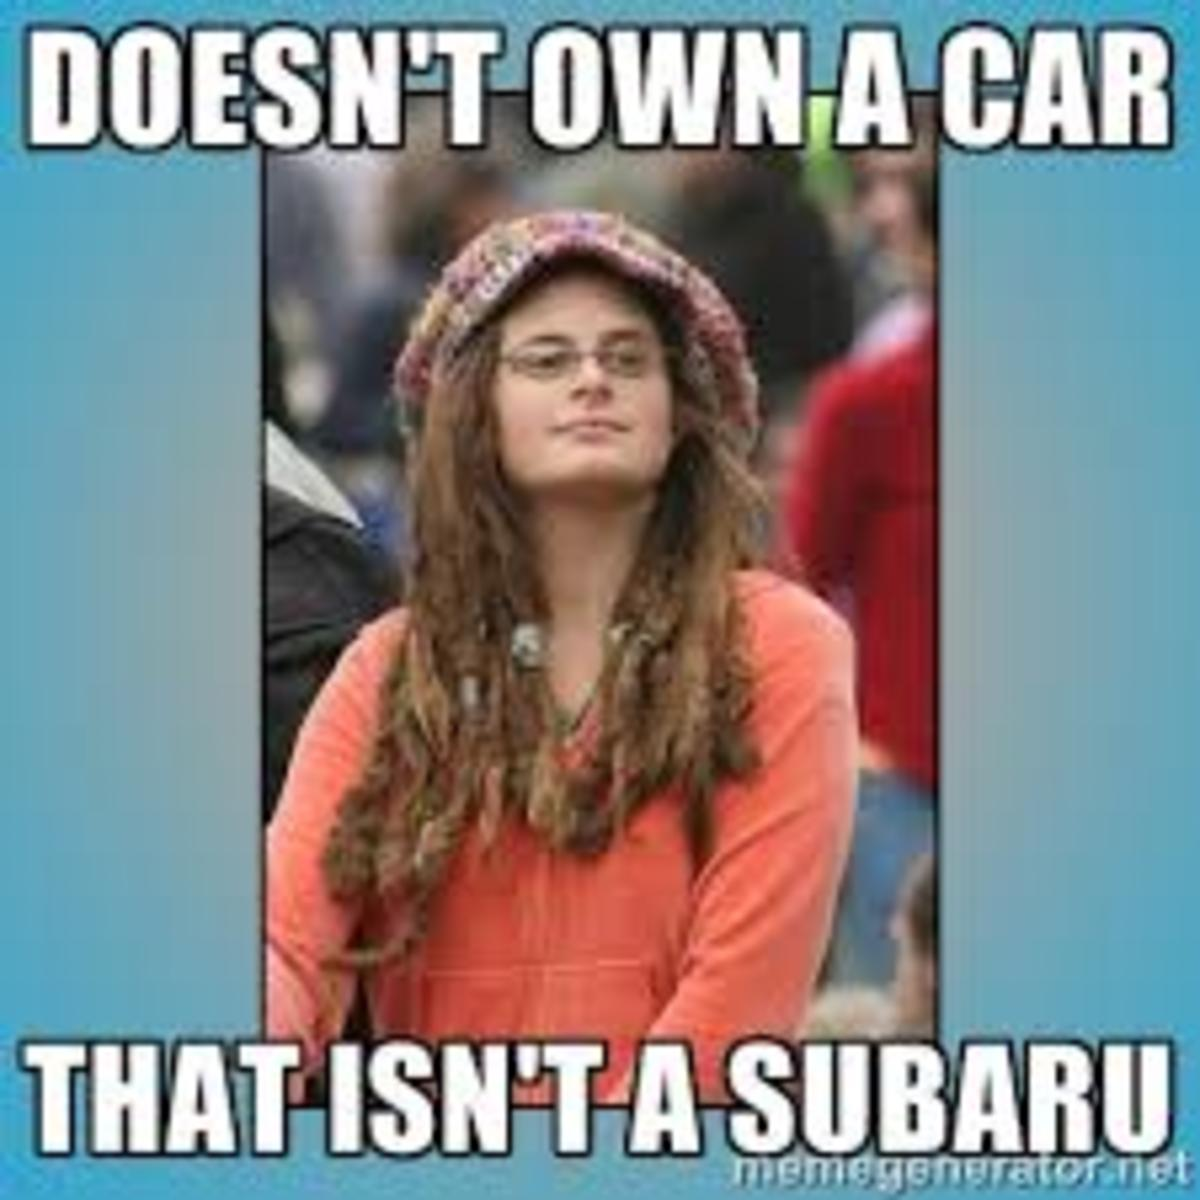 What does driving a Subaru say about you?